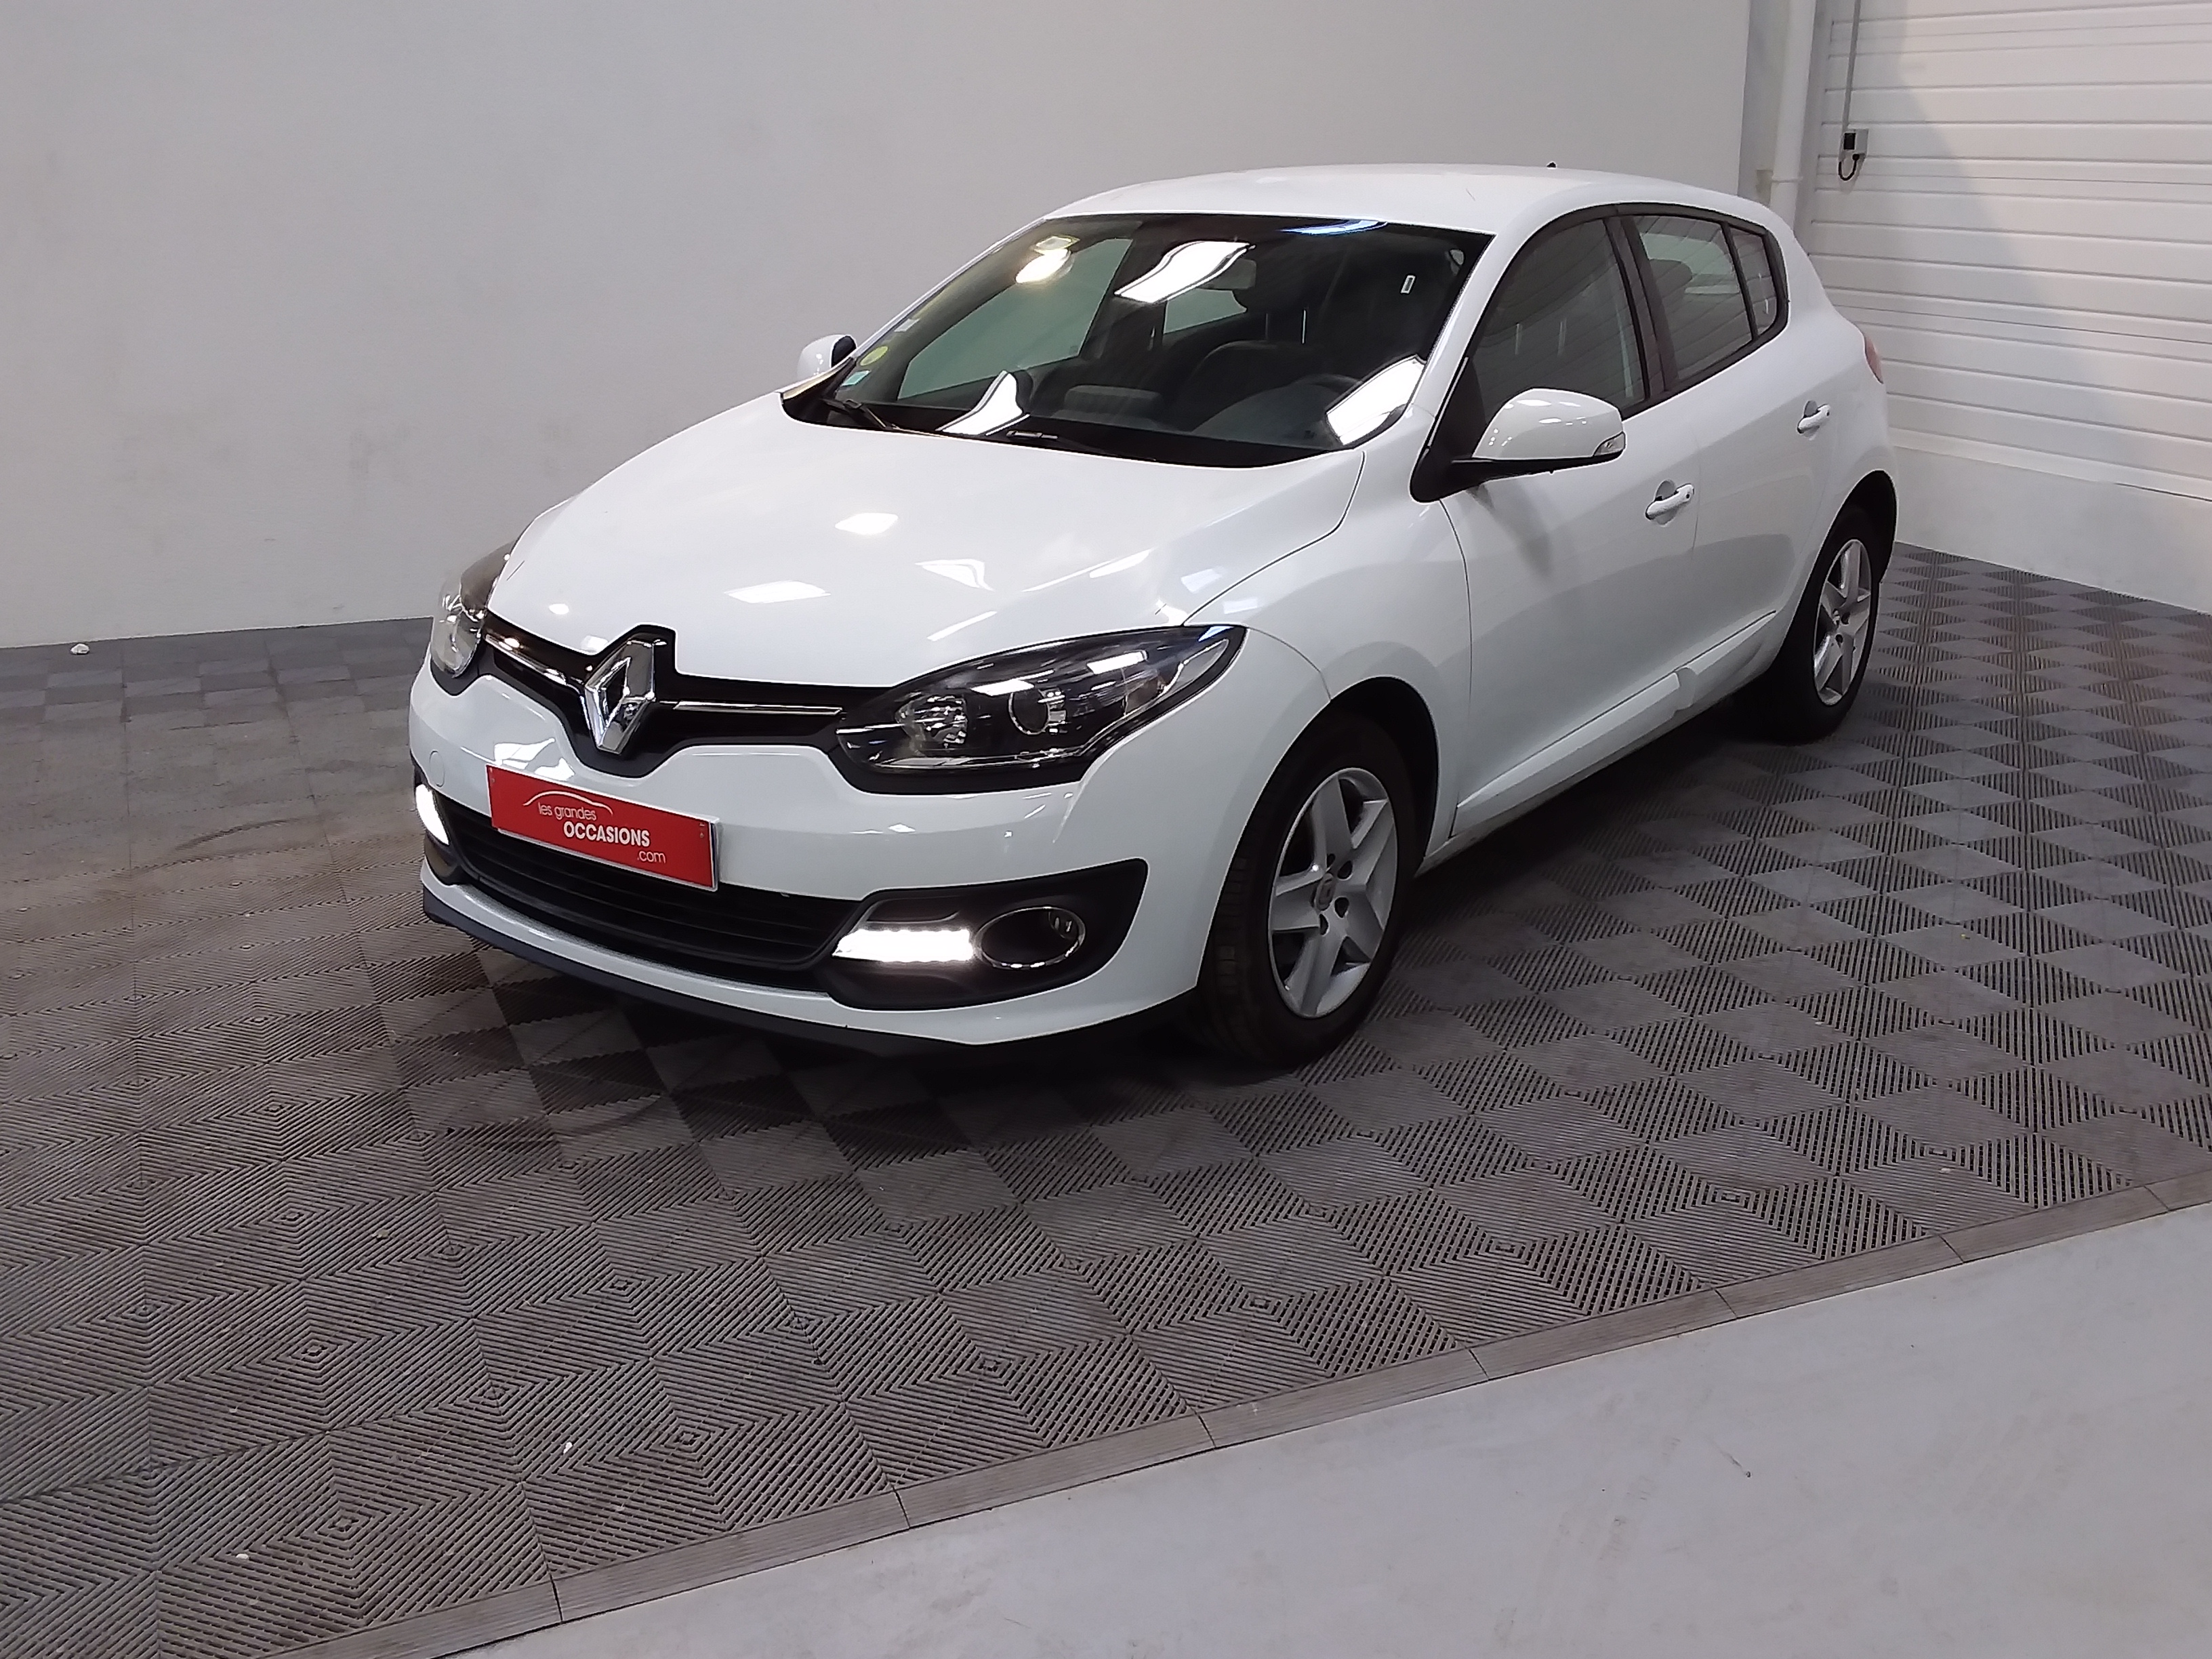 RENAULT MEGANE III BERLINE BUSINESS dCi 110 Energy eco2 Business E6 d'occasion